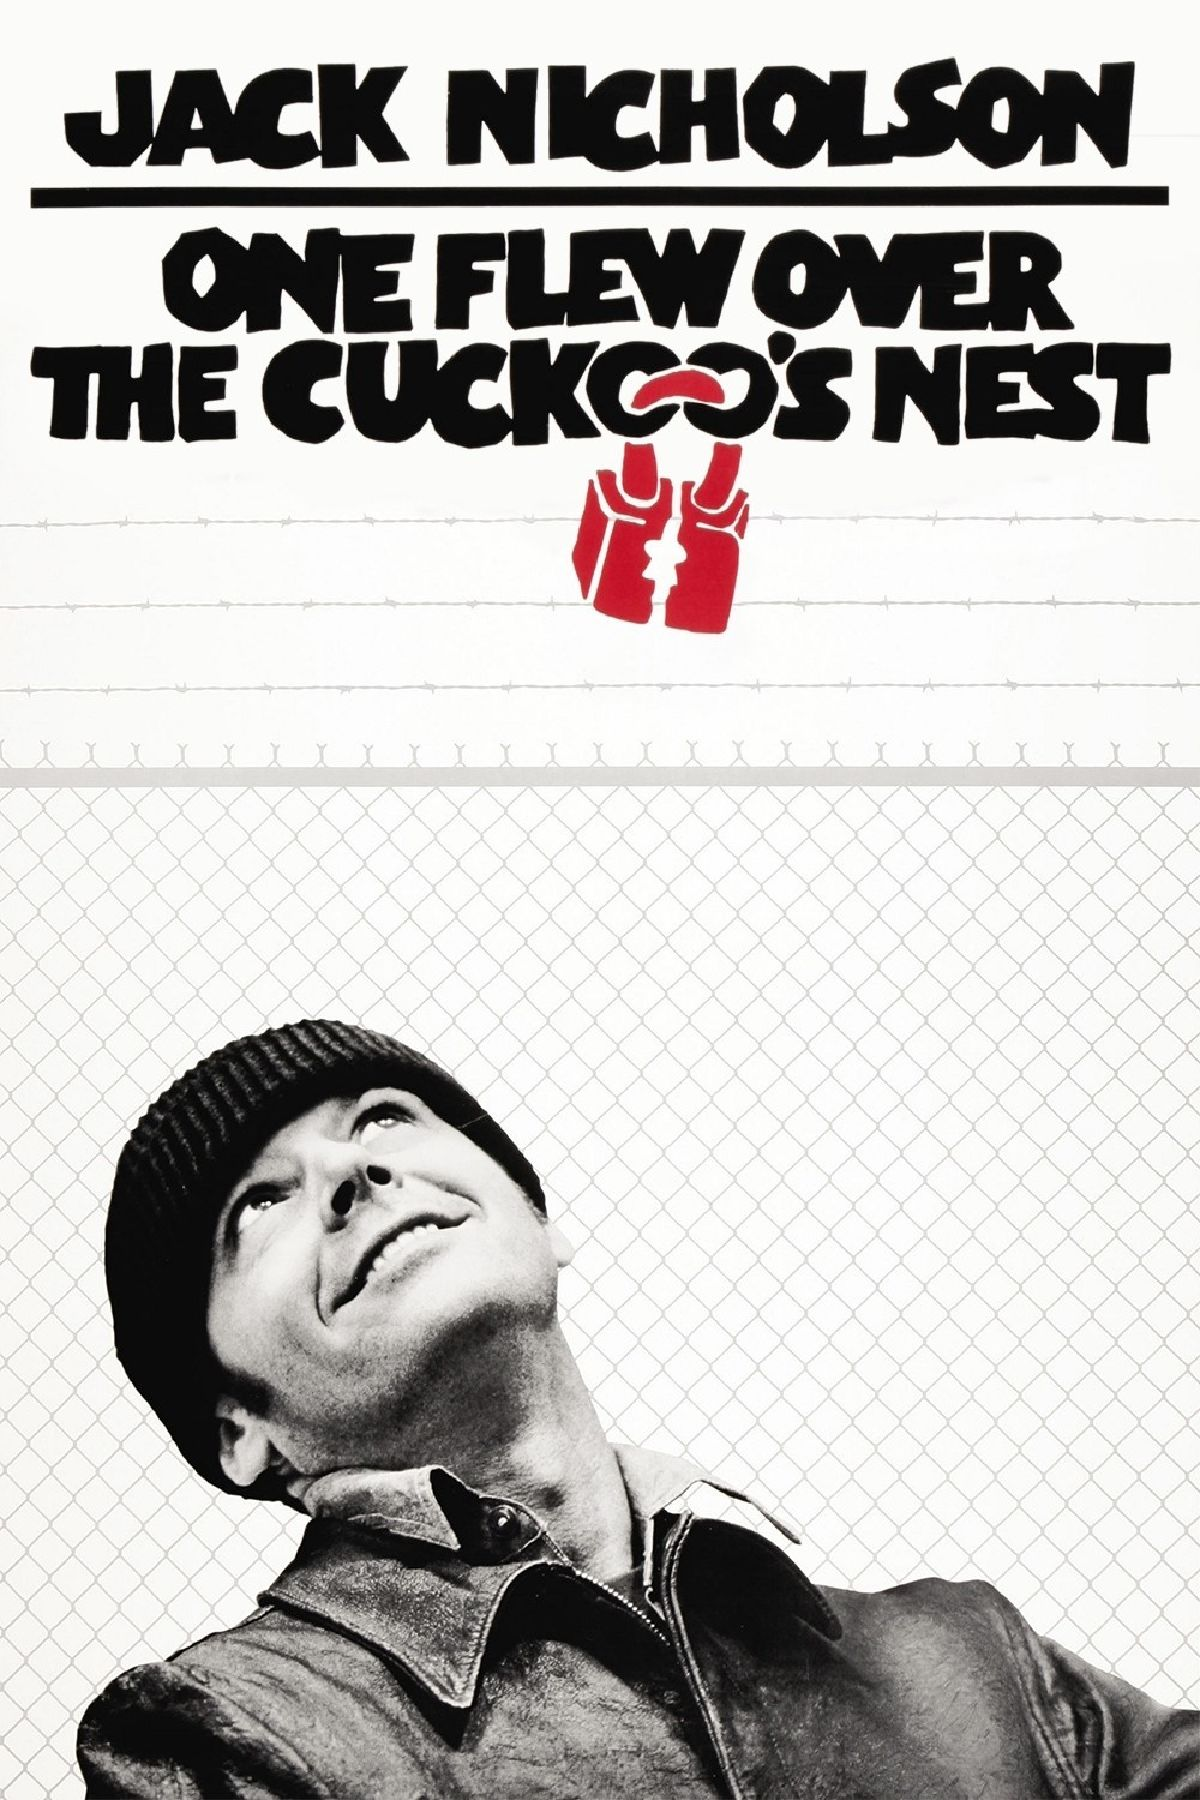 'One Flew Over the Cuckoo's Nest' movie poster